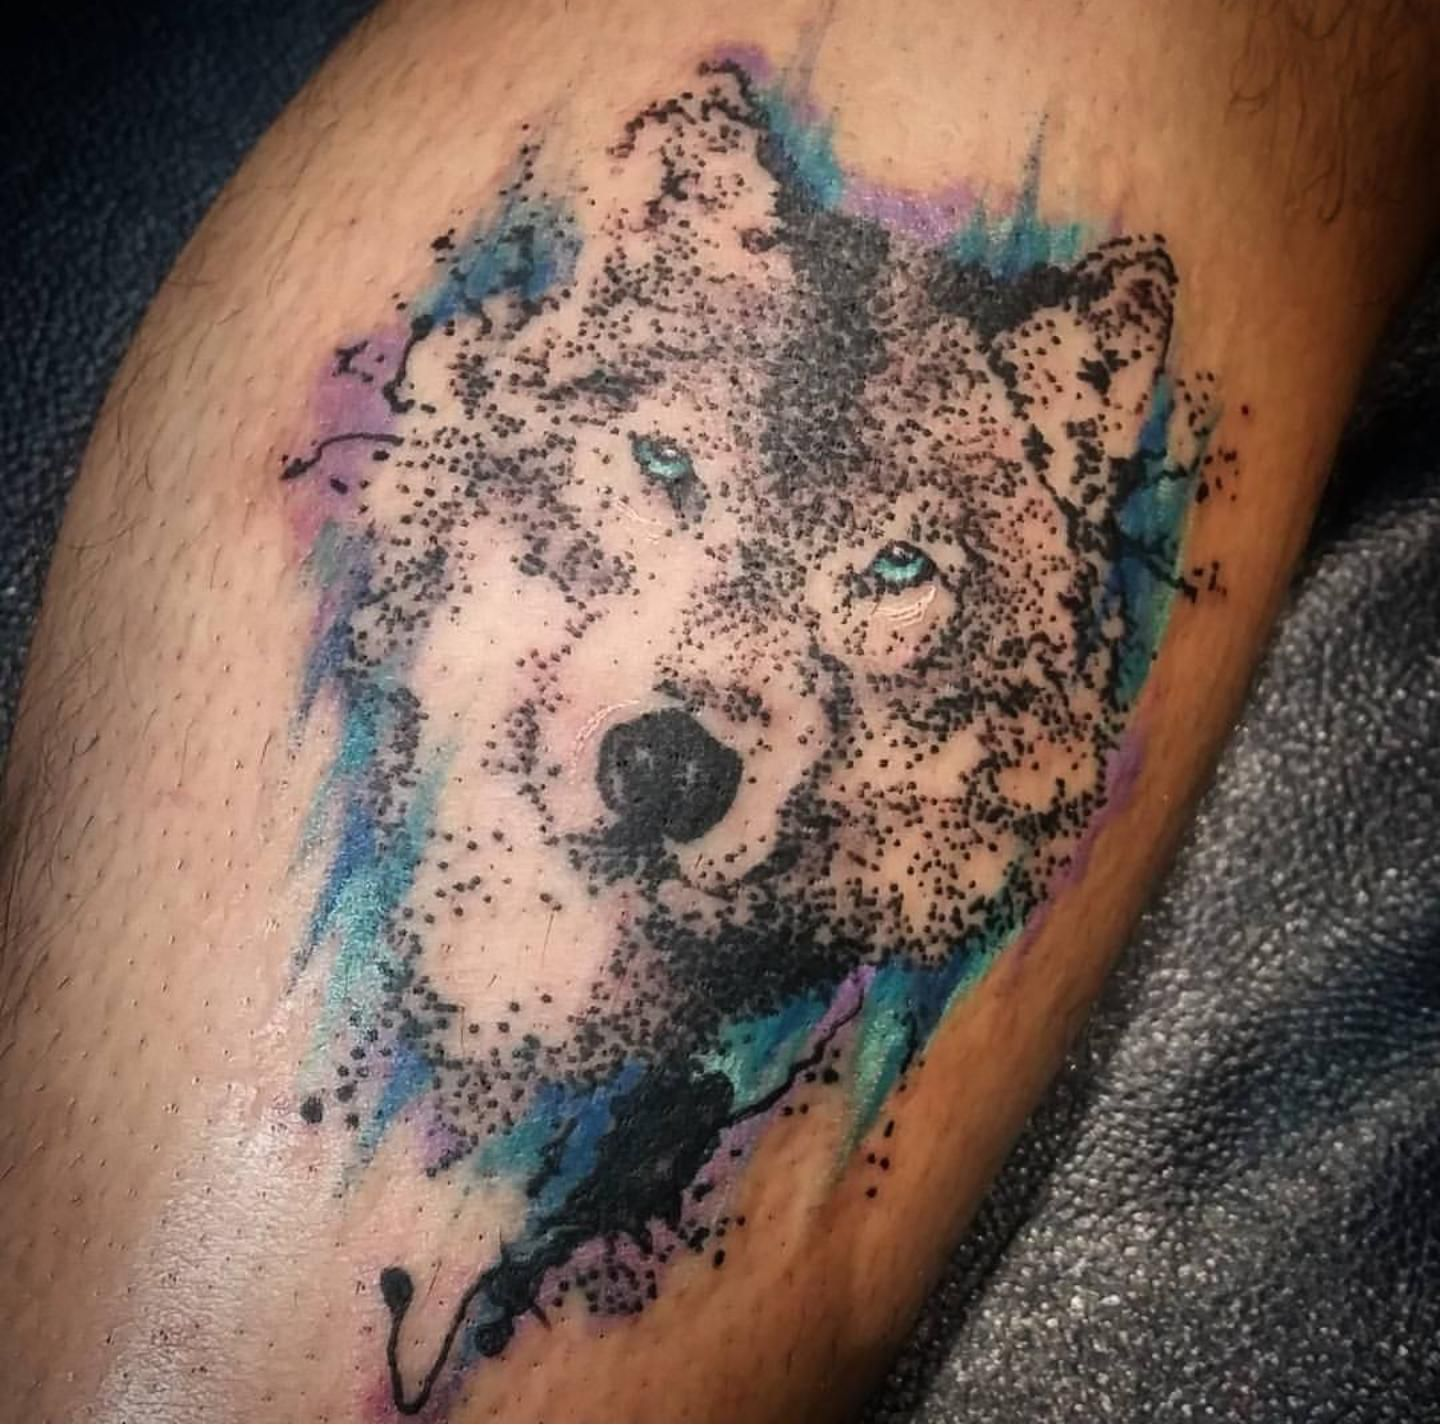 Pointilism tattoo by Dan Noyes from Studio 4 in St. Catherine's.